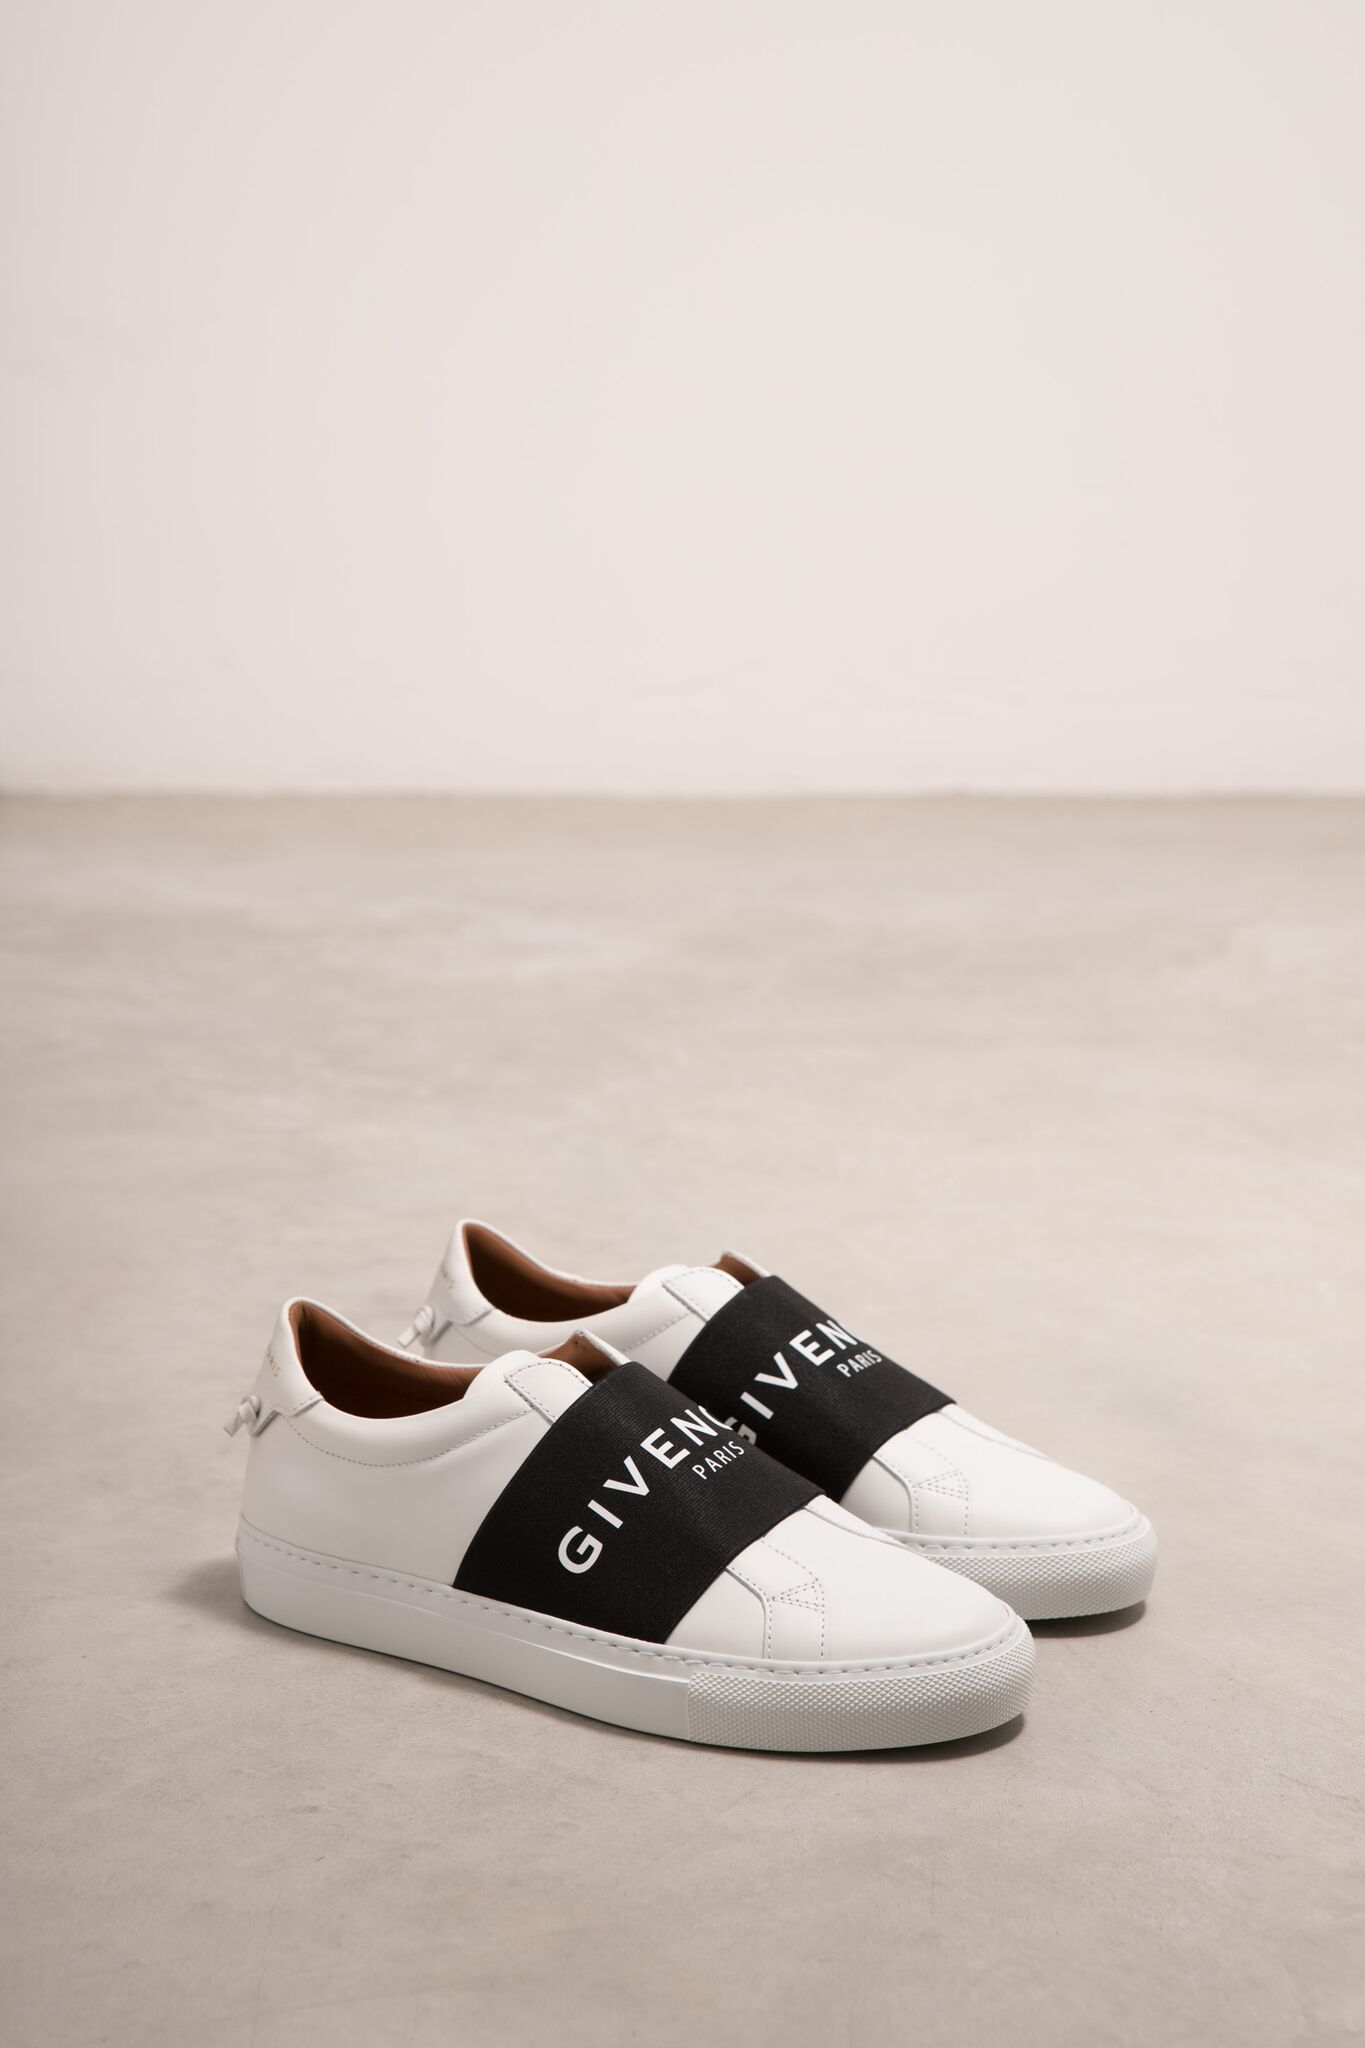 71a9761b42f Givenchy Sneakers